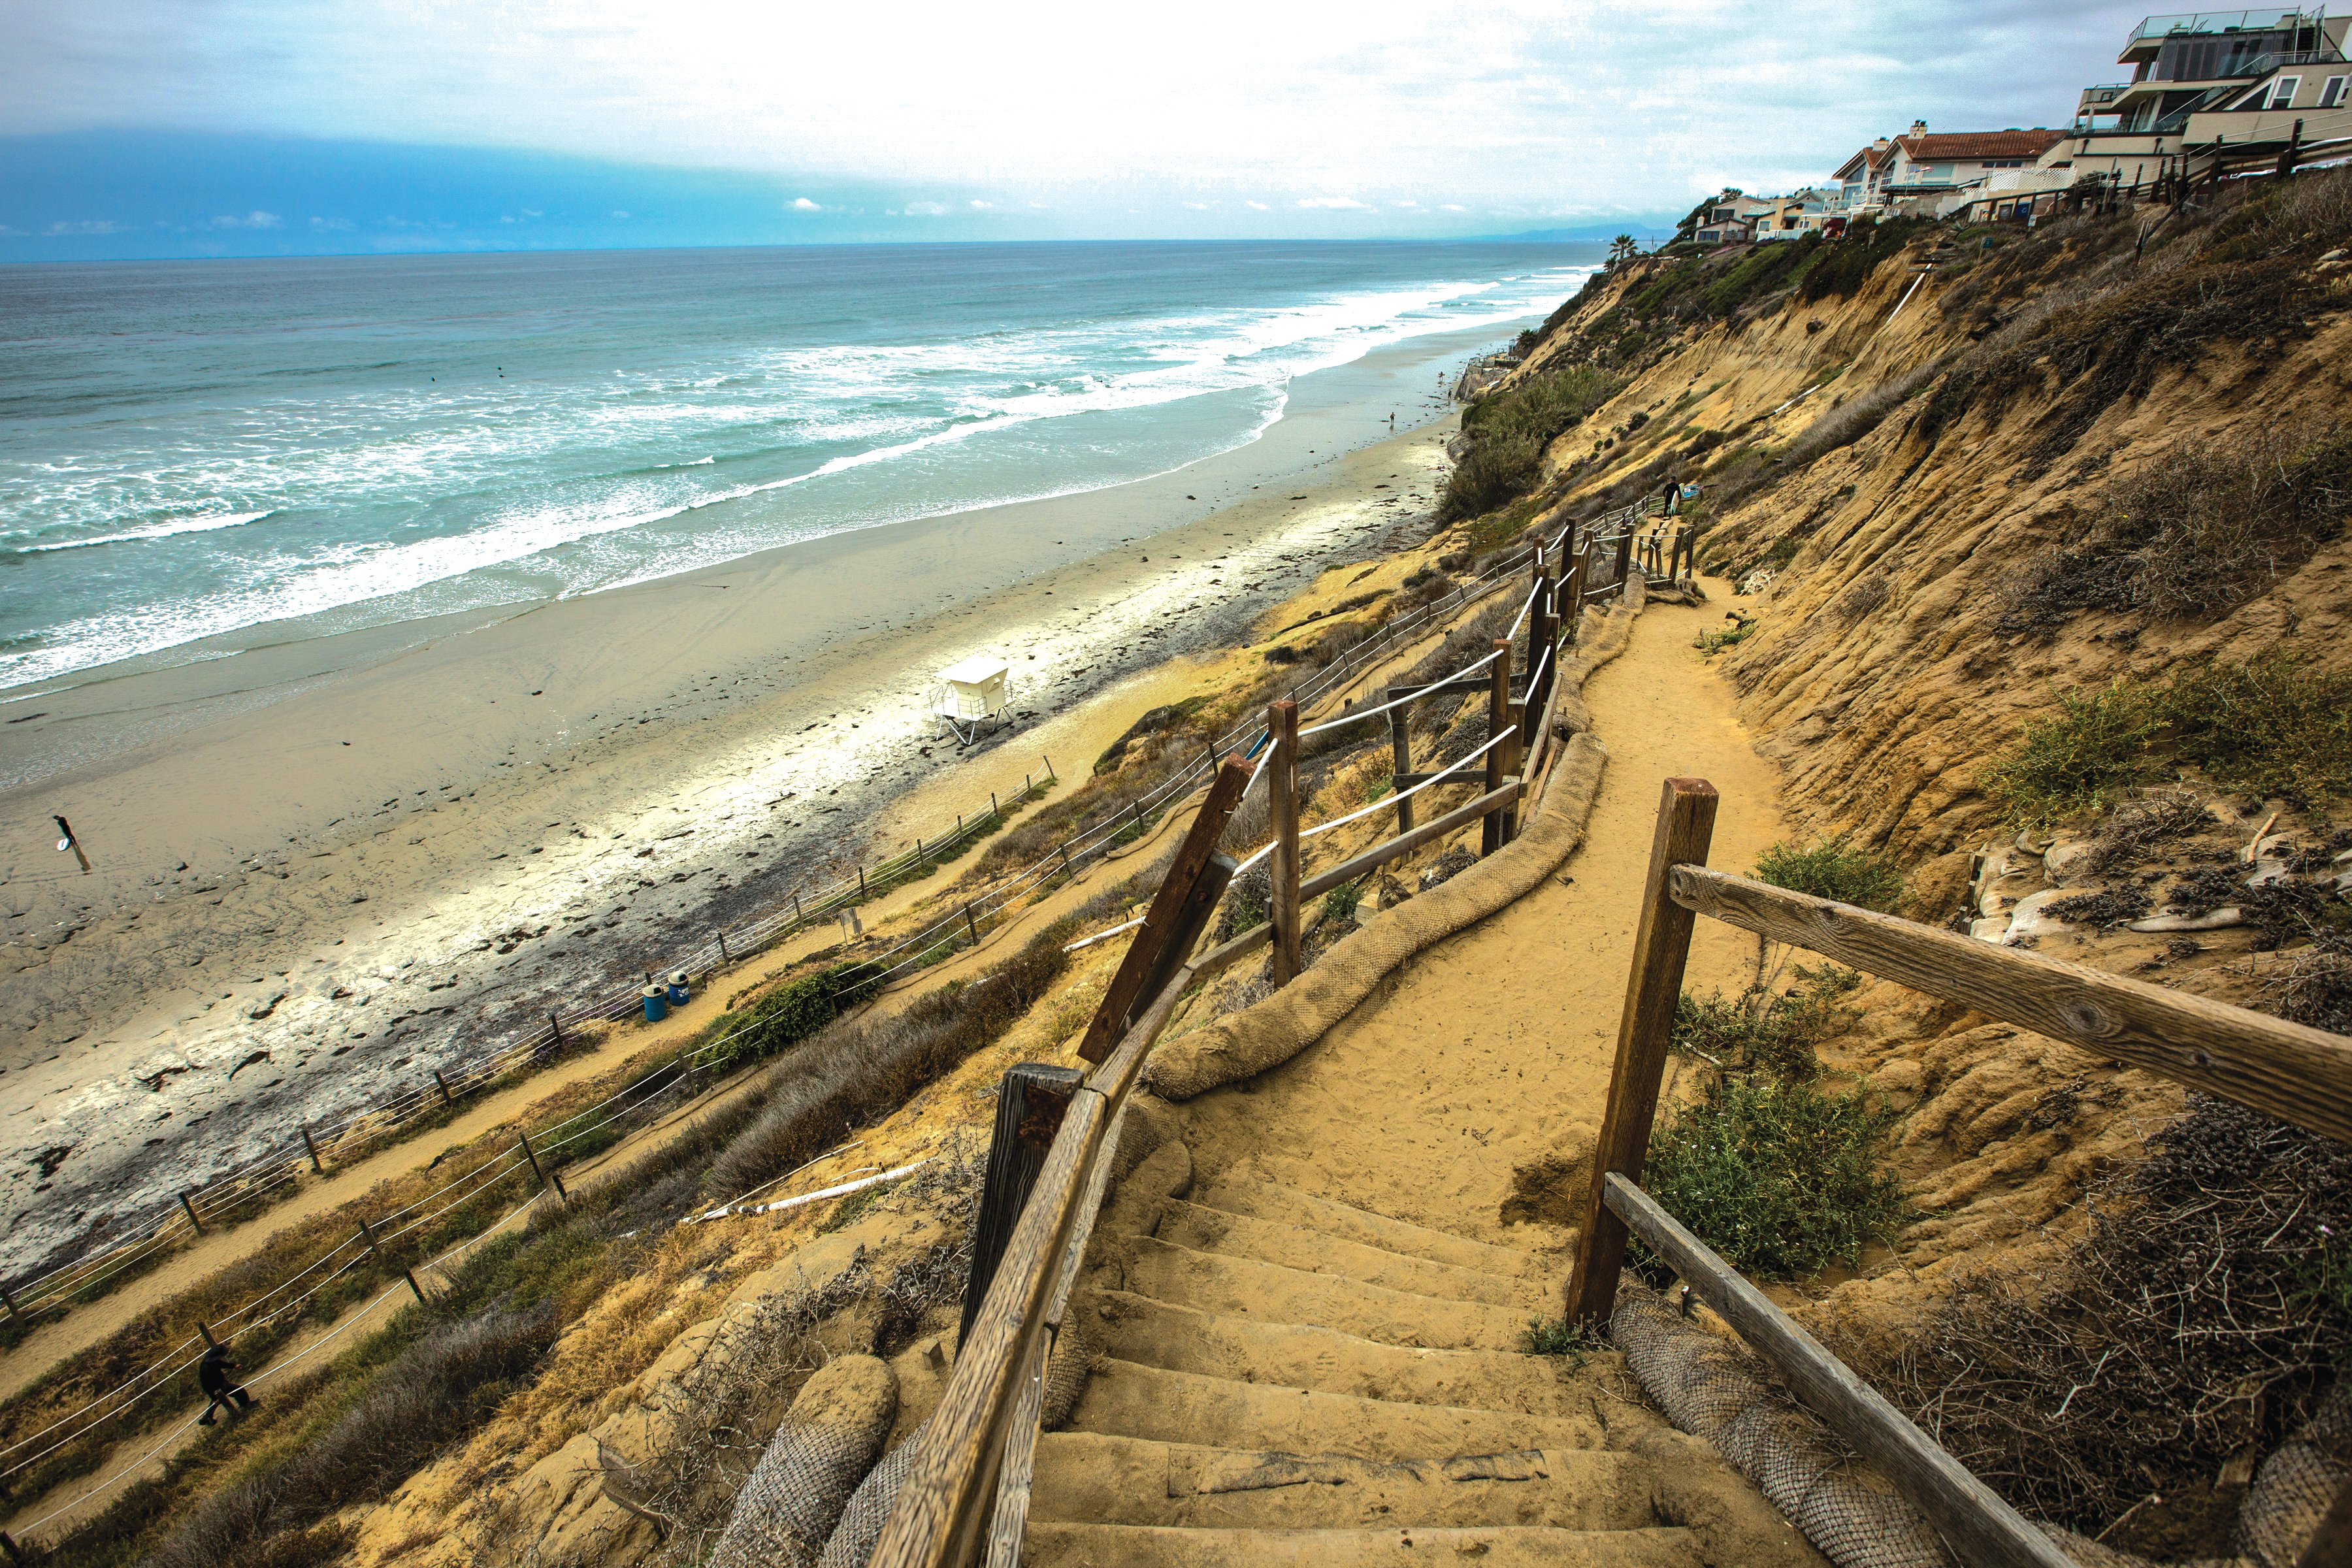 Encinitas ditches concrete Beacon's staircase over some residents' objections